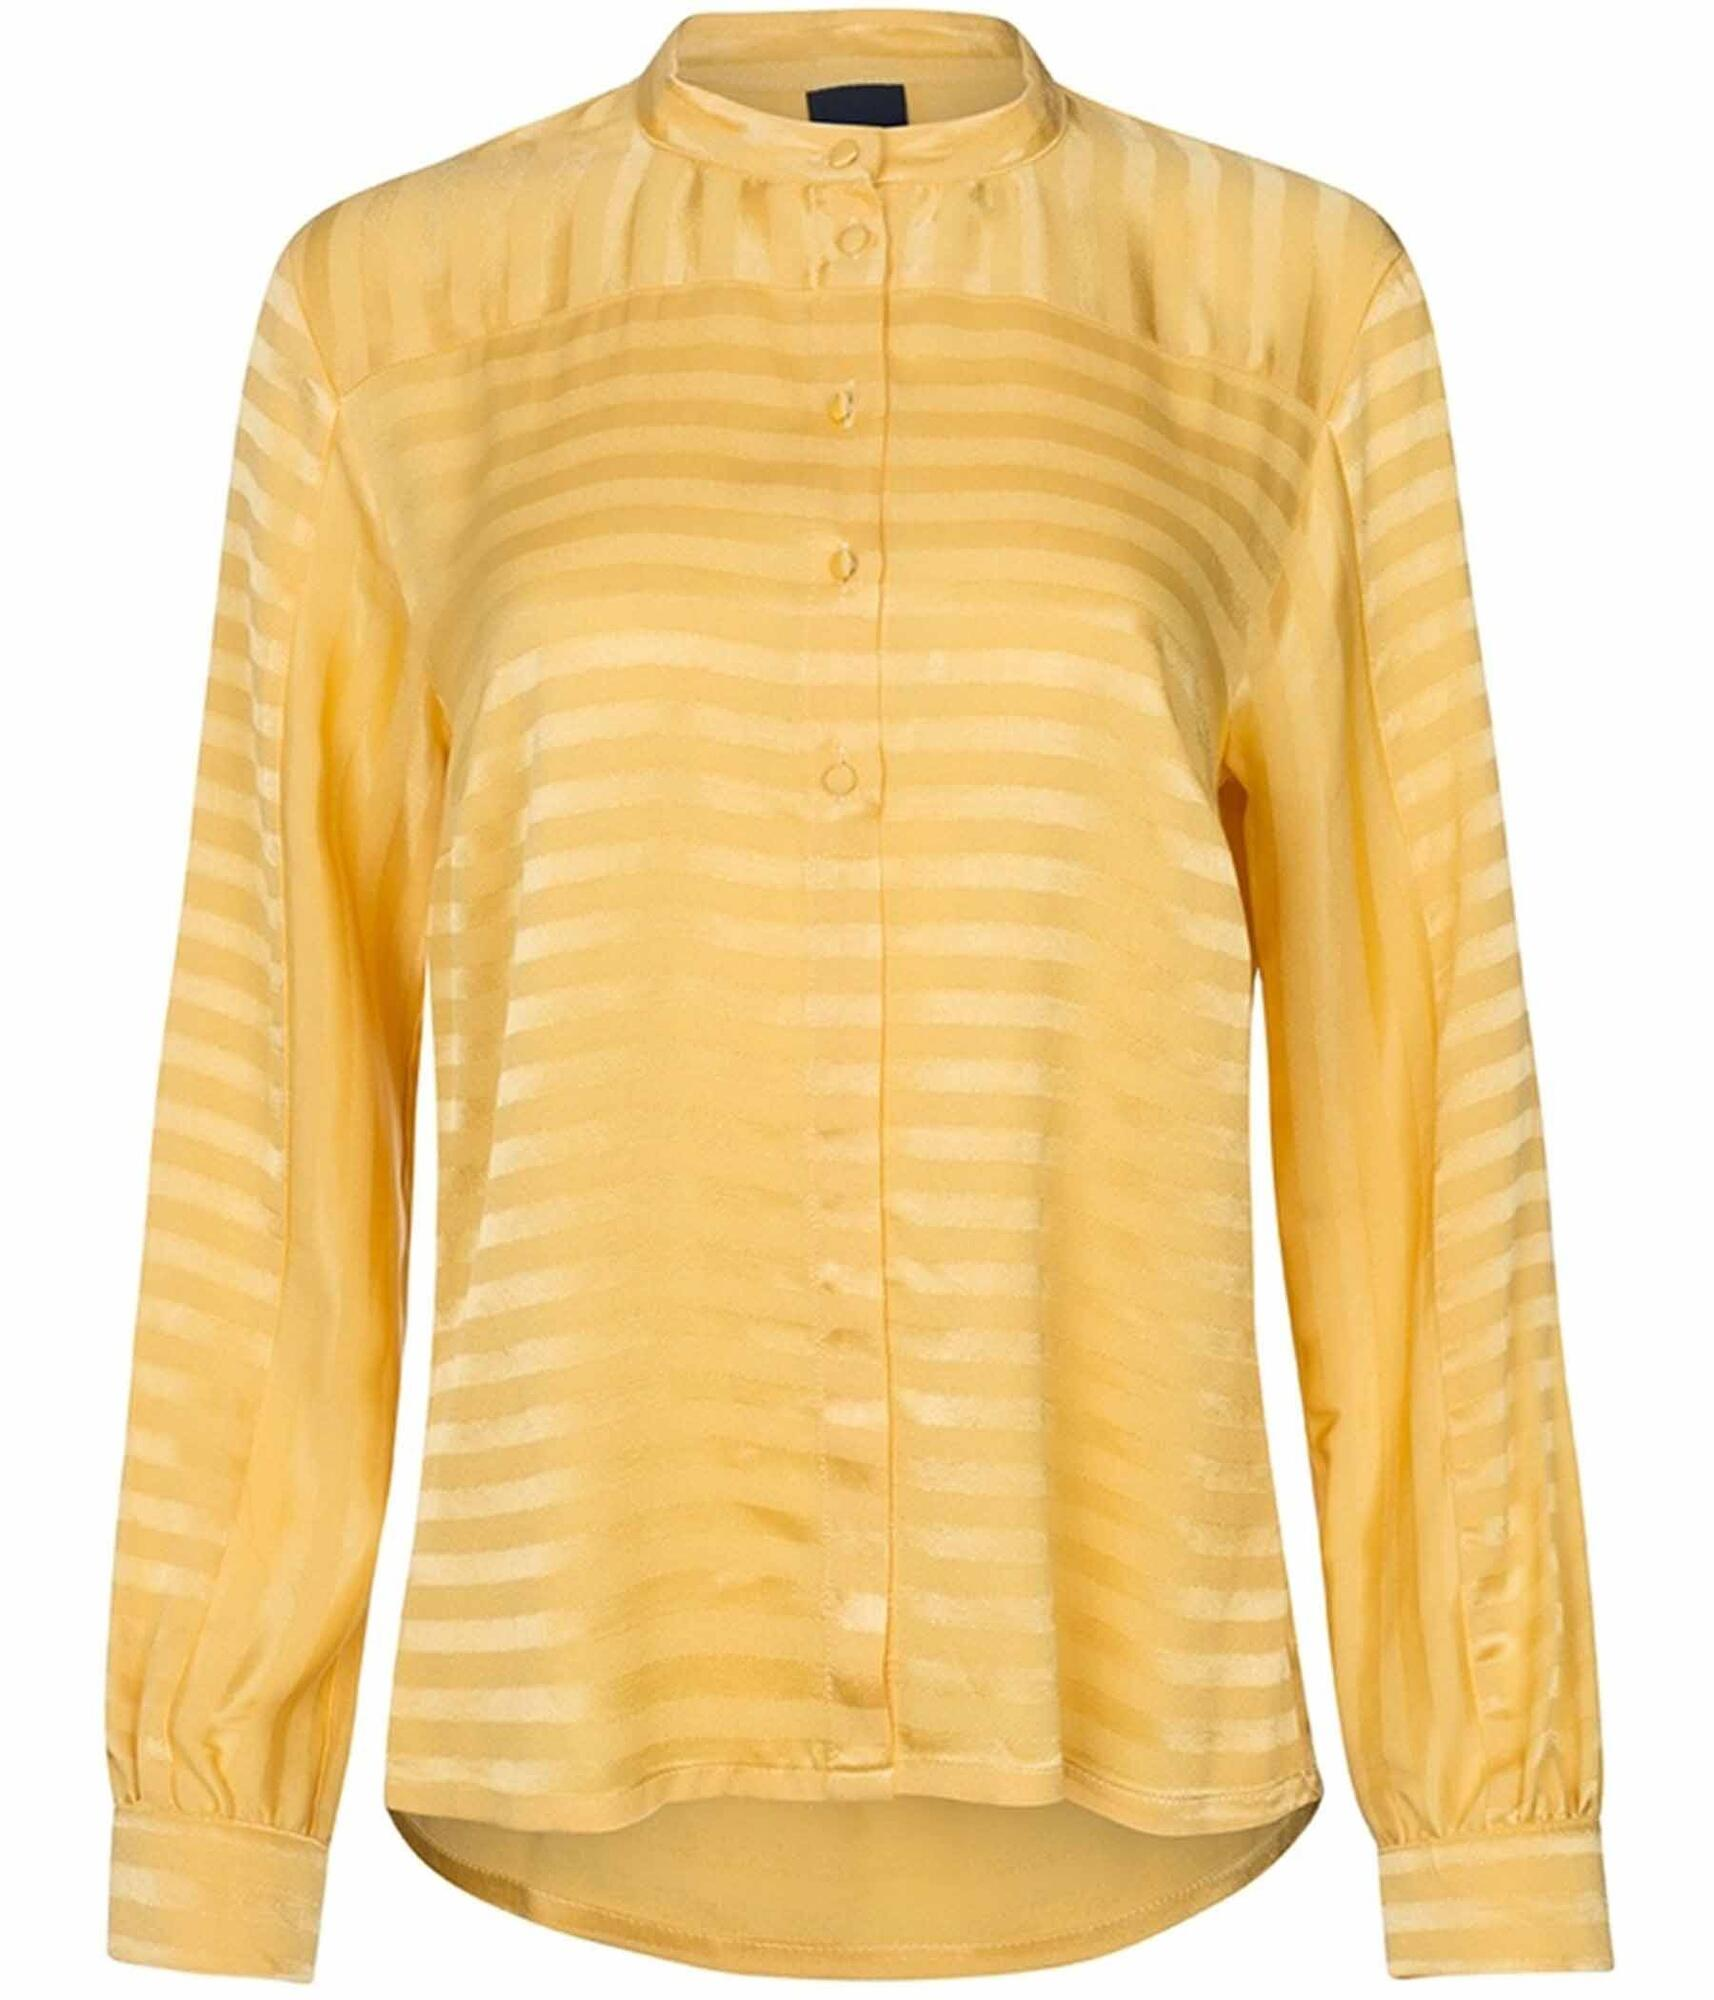 563762d9e078 One-Two Käte bluse i bumblebee farve 6951-672-106. One-Two Käte bluse i  bumblebee farve 6951-672-106